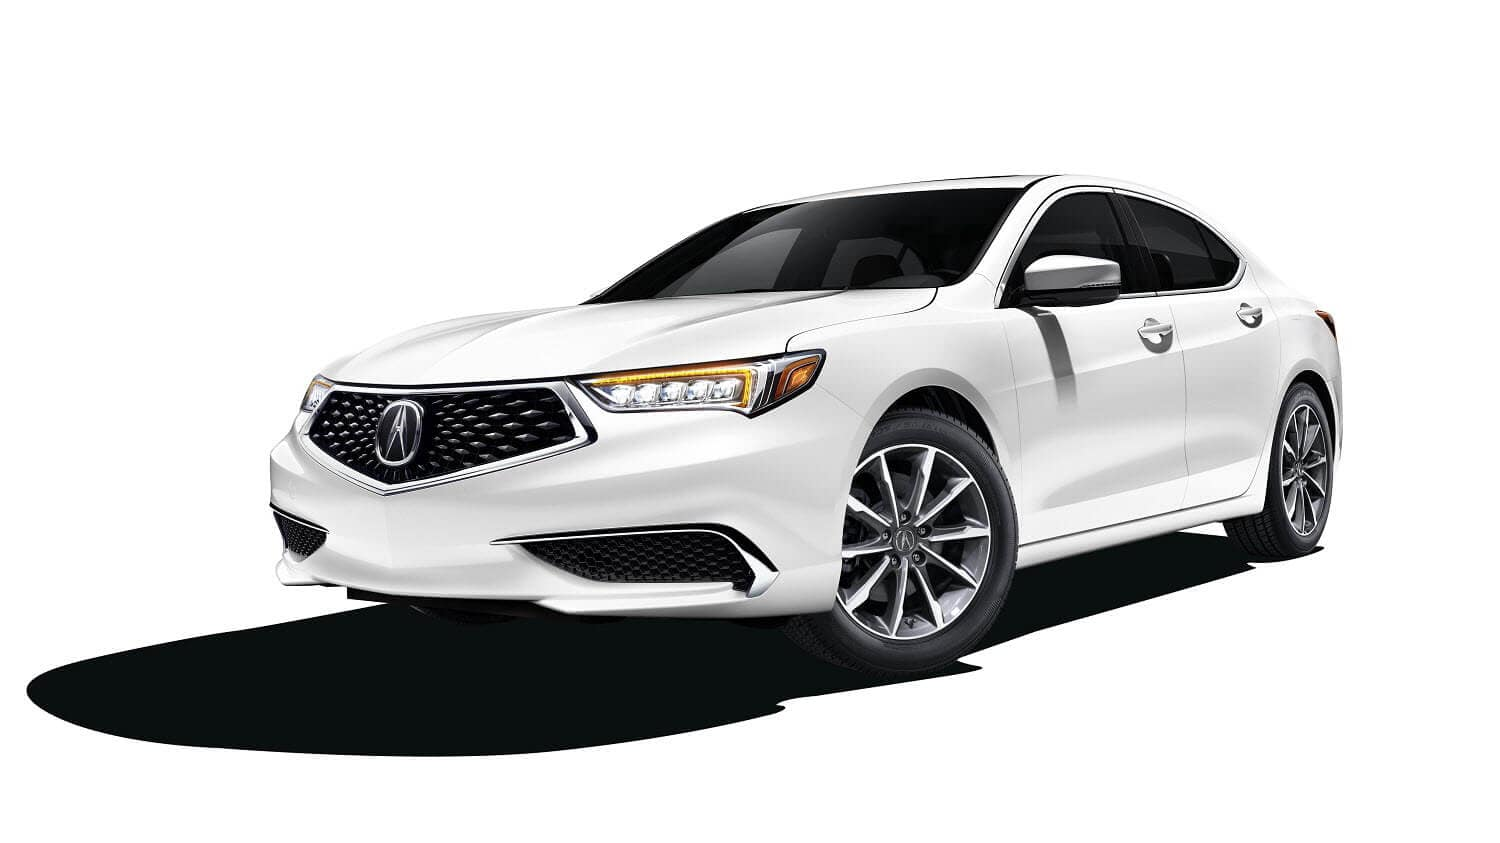 2020 Acura TLX Base in Platinum White Pearl